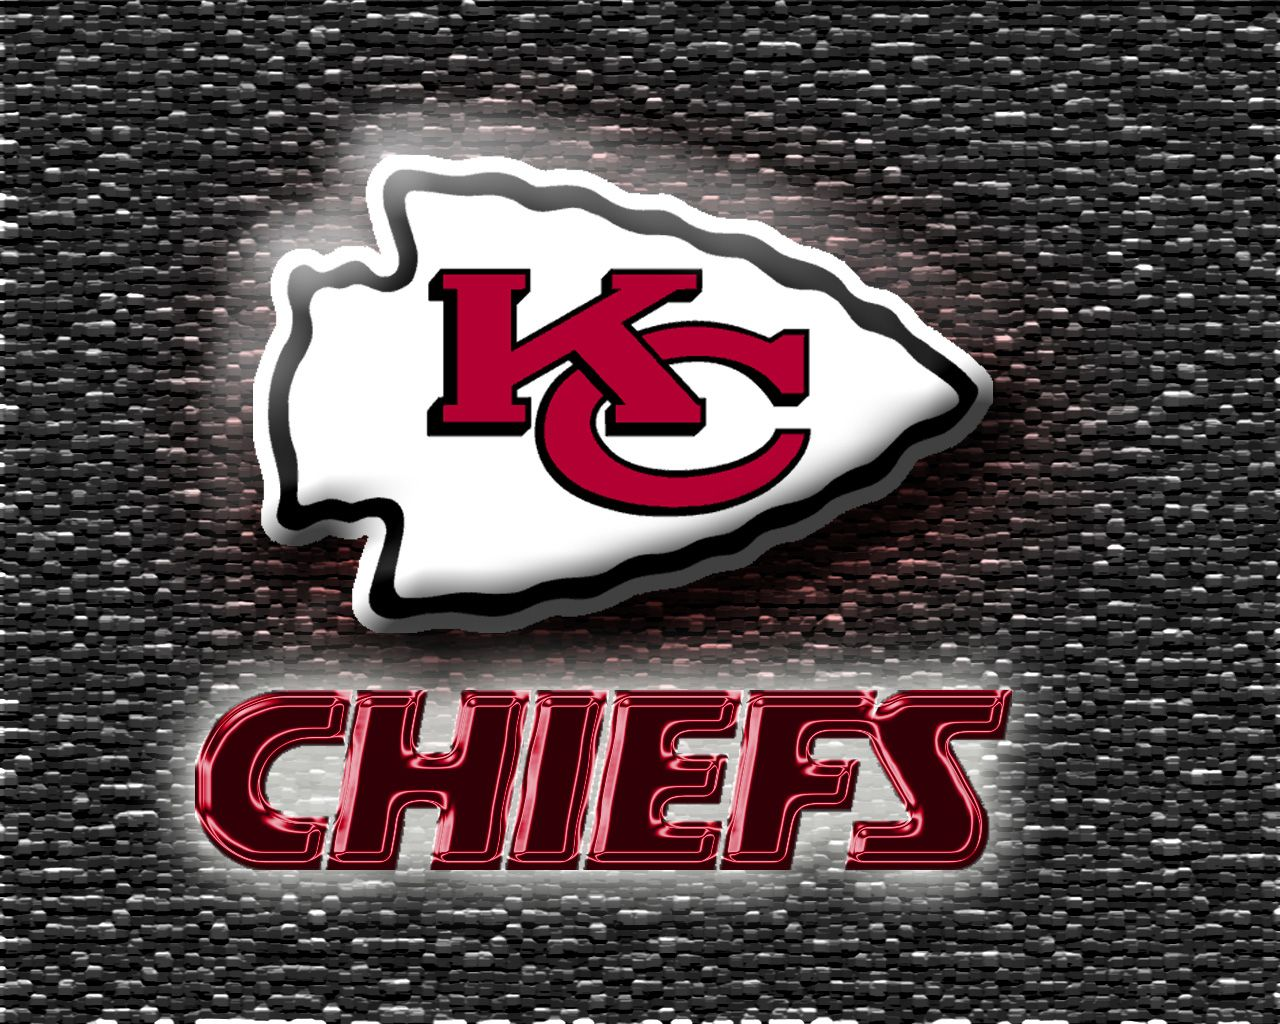 Kc Chiefs Wallpaper Chiefs Wallpaper Kansas City 1280x960 04 11 2011 Kansas City Chiefs Kansas City Chiefs Chiefs Wallpaper Kansas City Chiefs Football